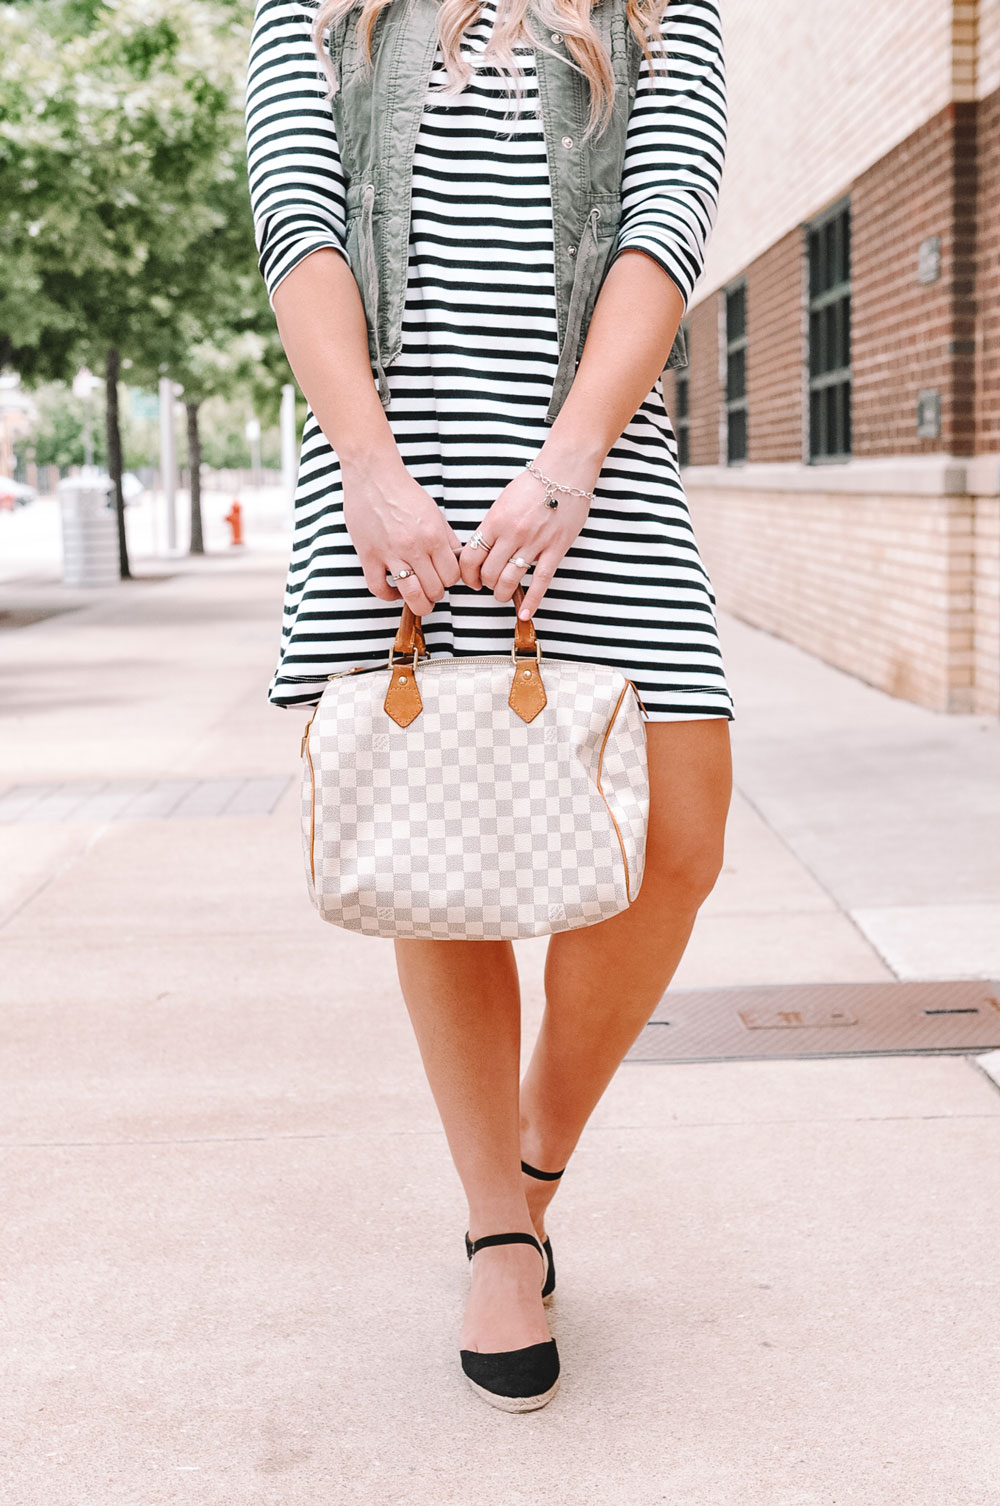 OKC blogger Amanda Martin styles James Avery charm bracelets in a casual way